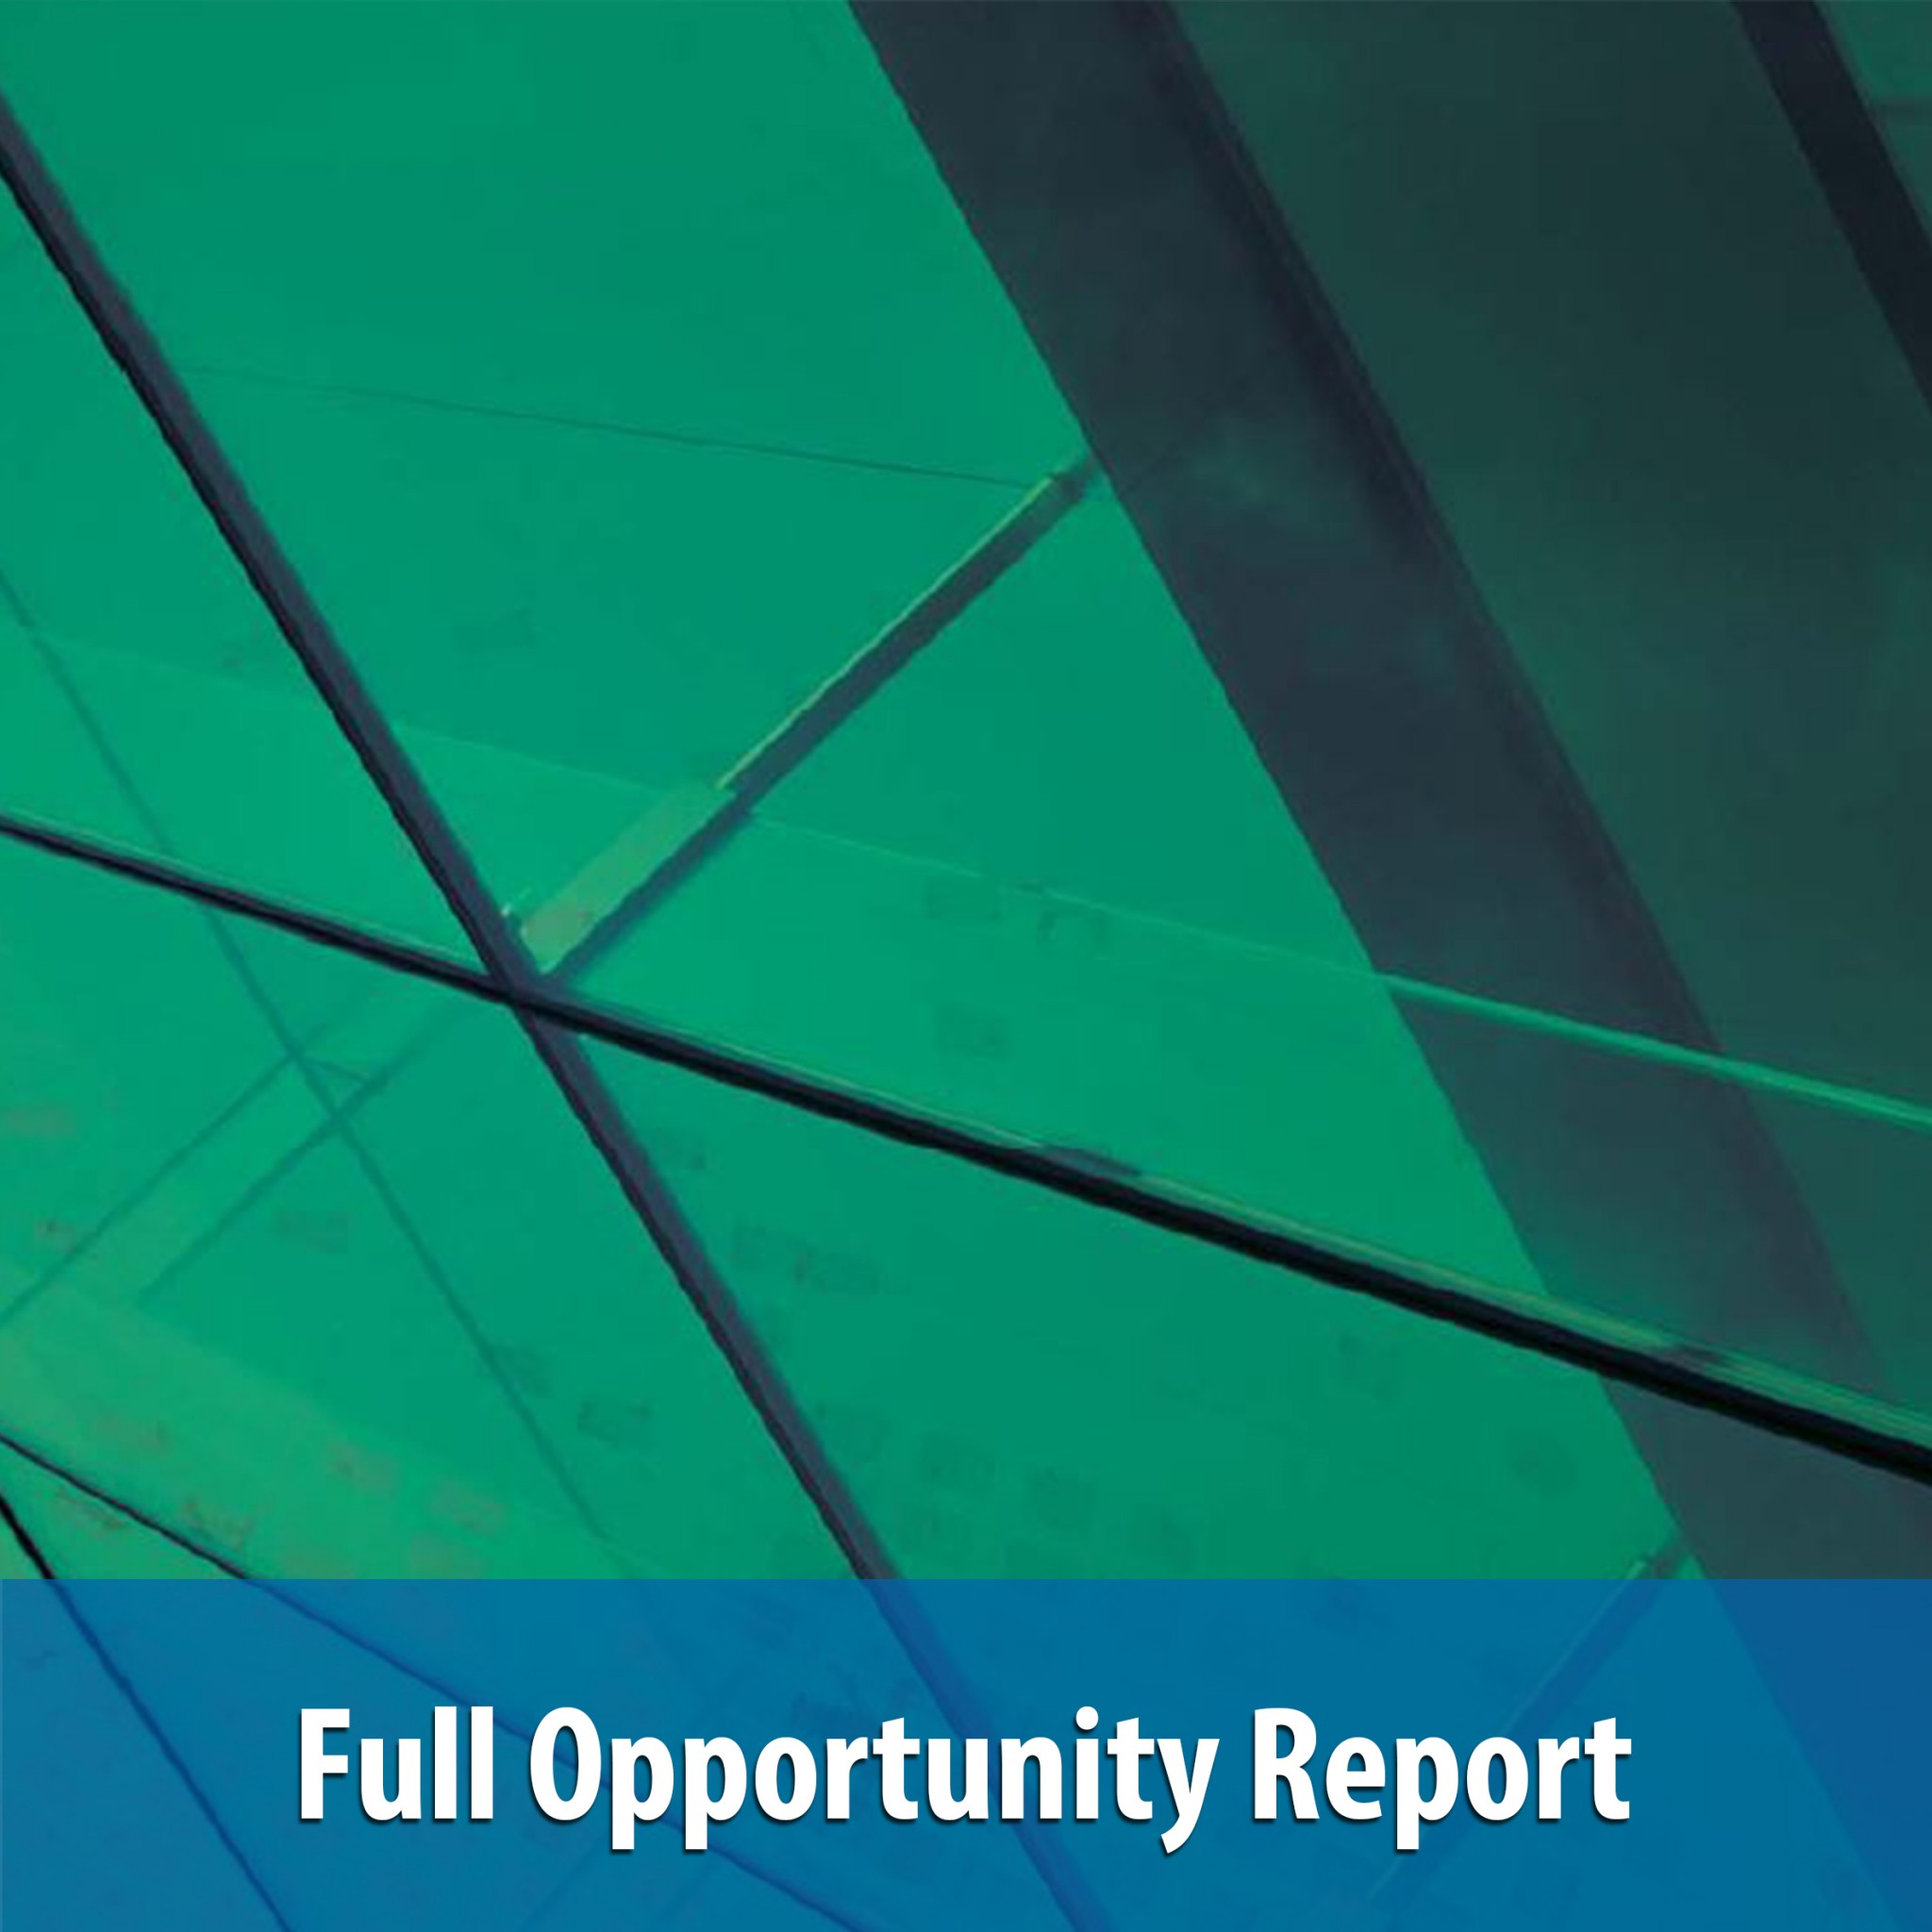 Full Opportunity Report - Invest